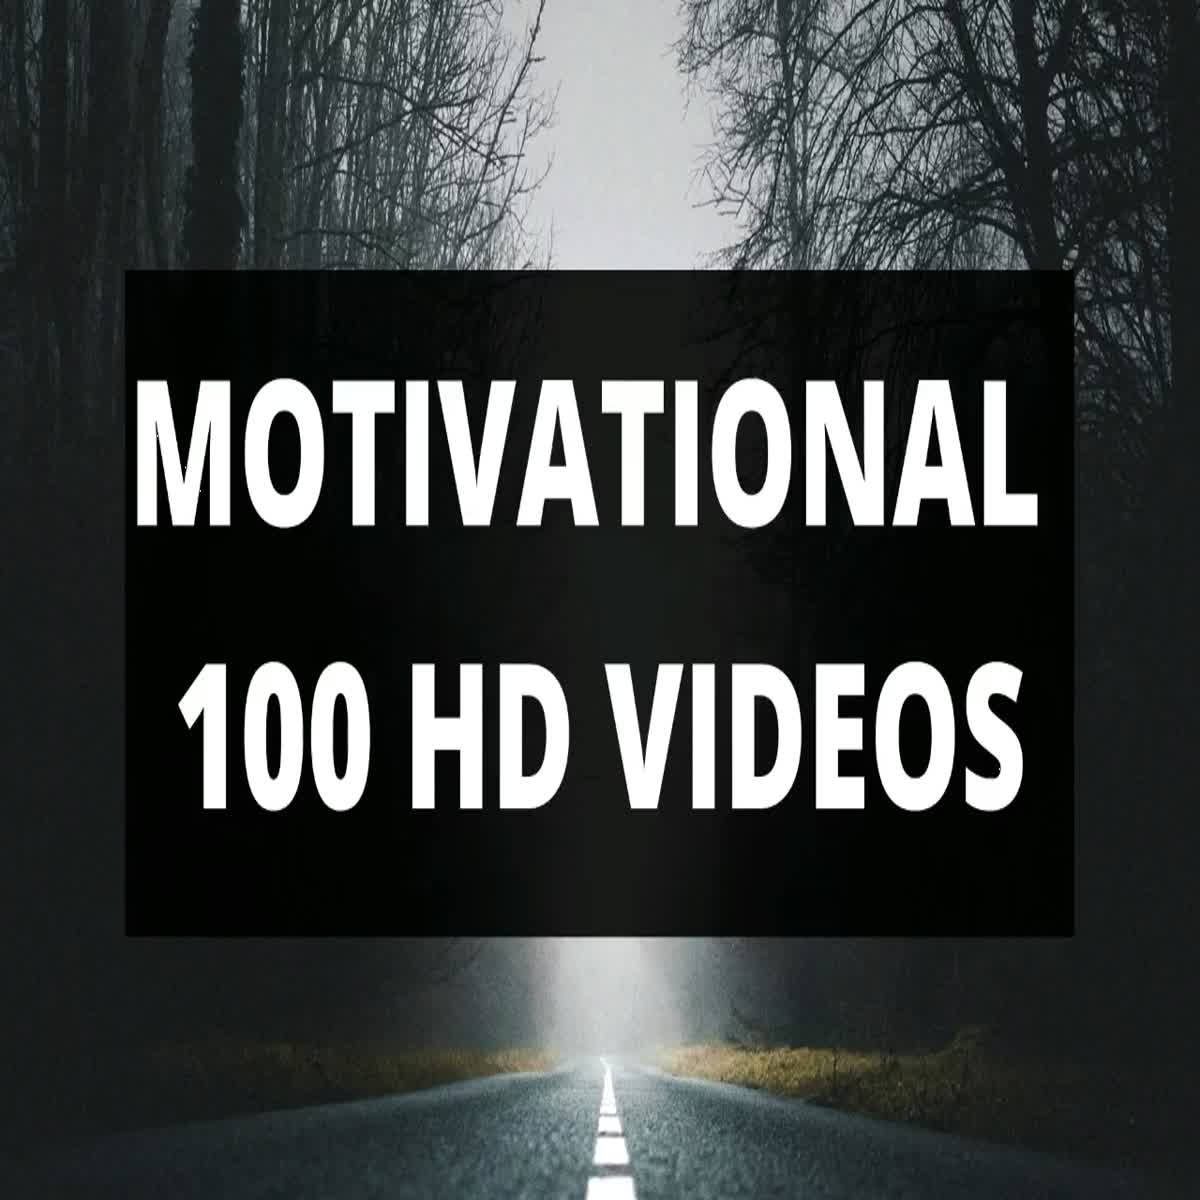 I will give 100 motivational inspiration HD videos